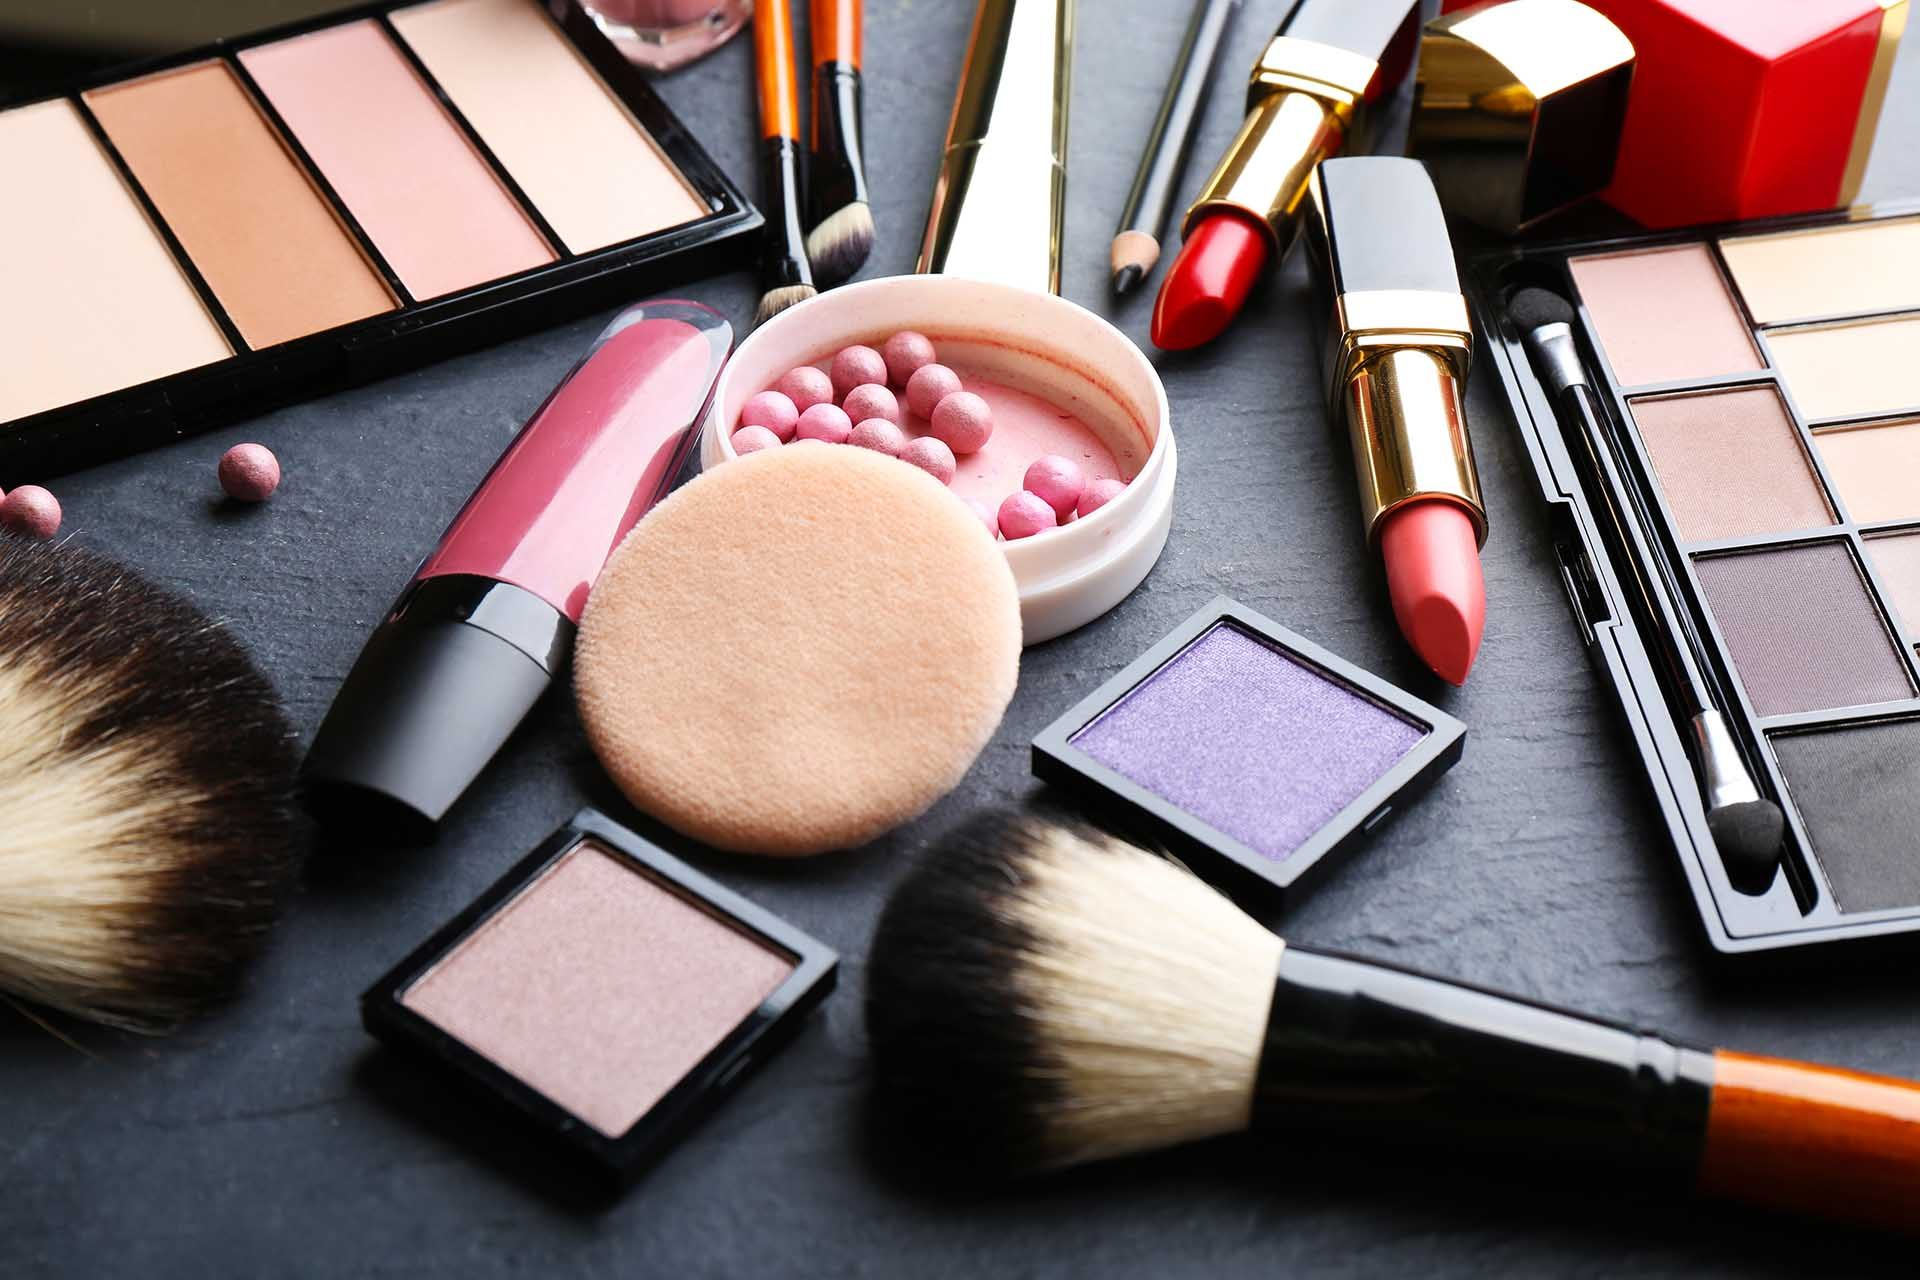 Risk By Counterfeit Cosmetics Online